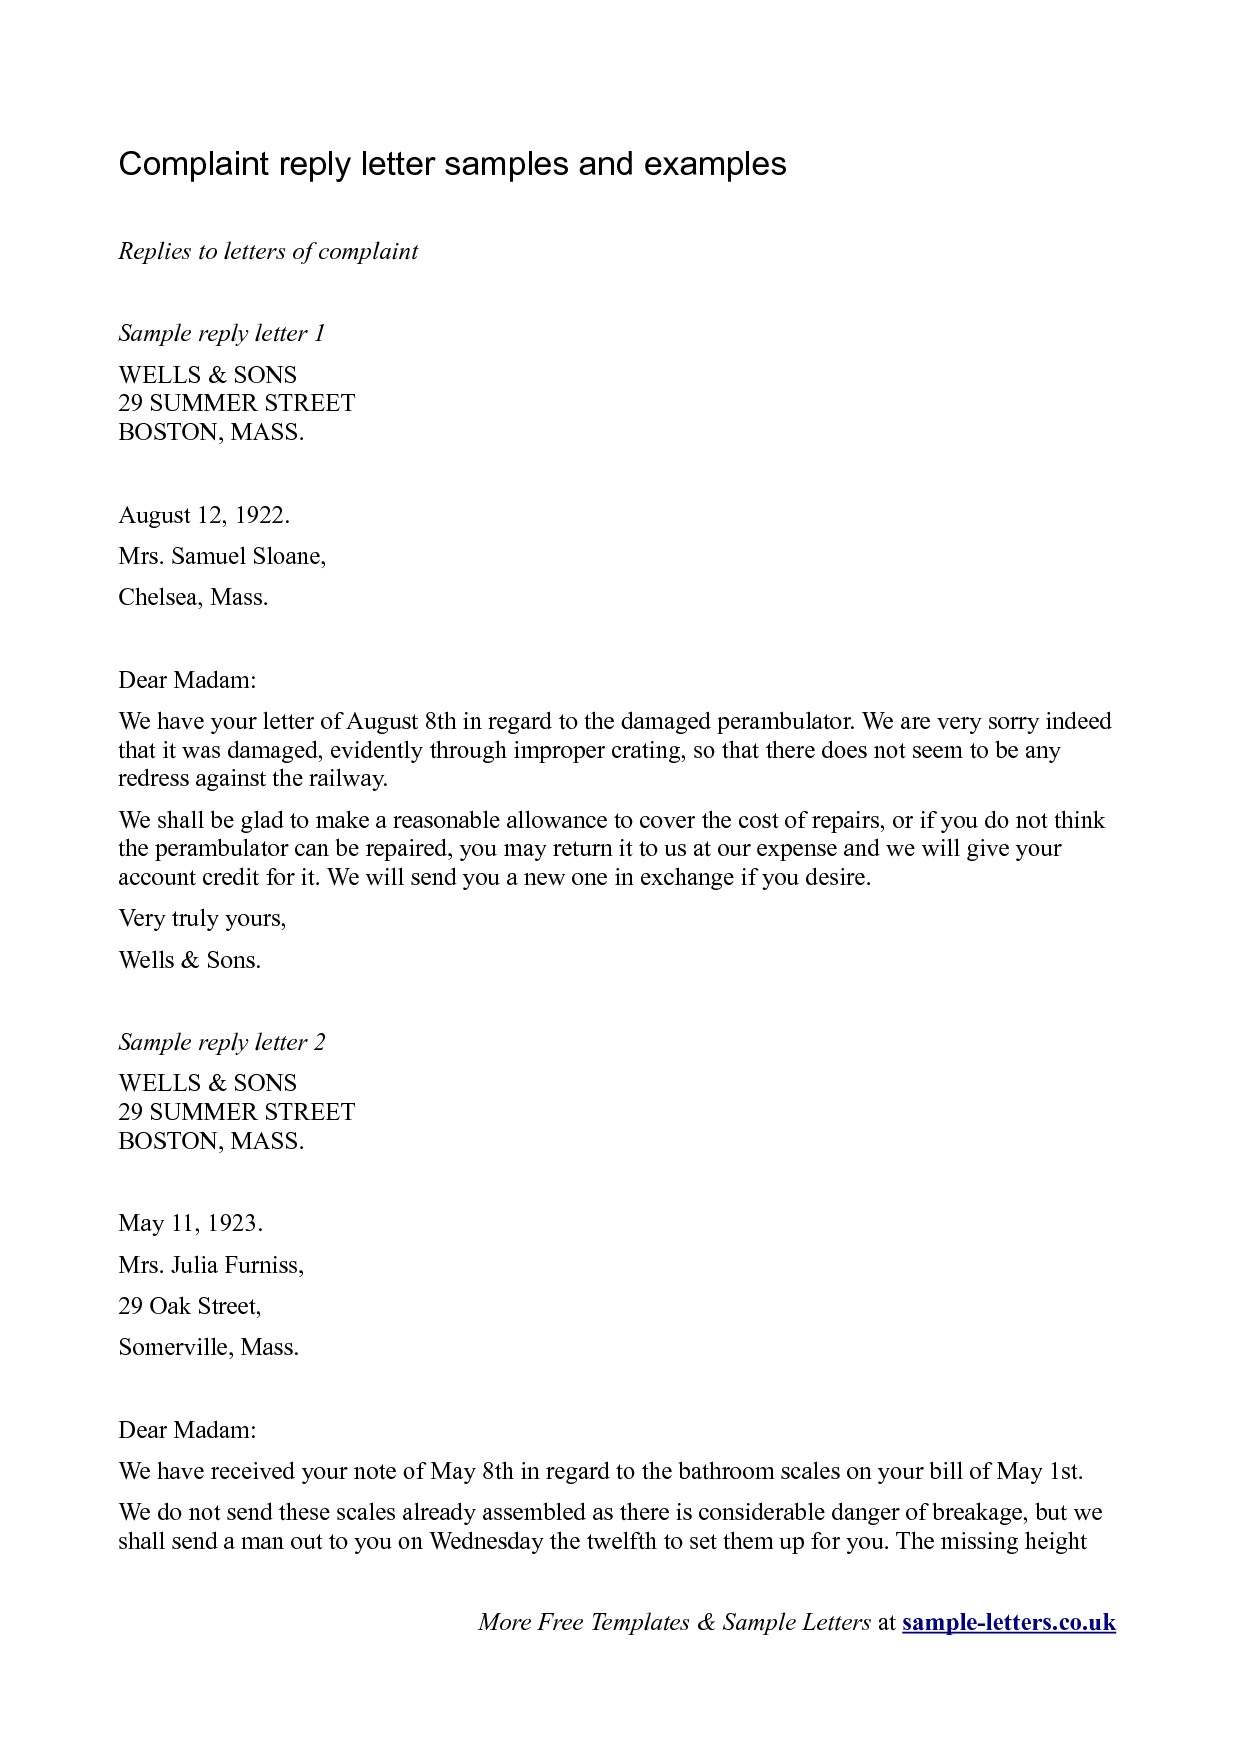 Complaint Letter Template - Replying to A Plaint Letter Template